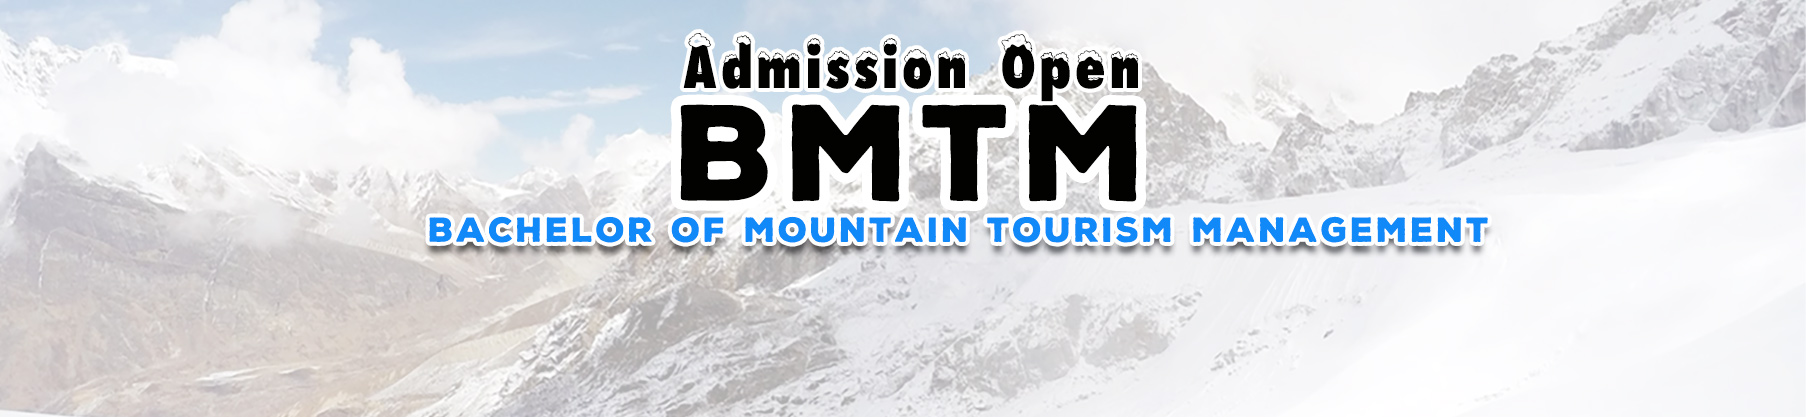 Admissions open for BMTM program at Janapriya Campus